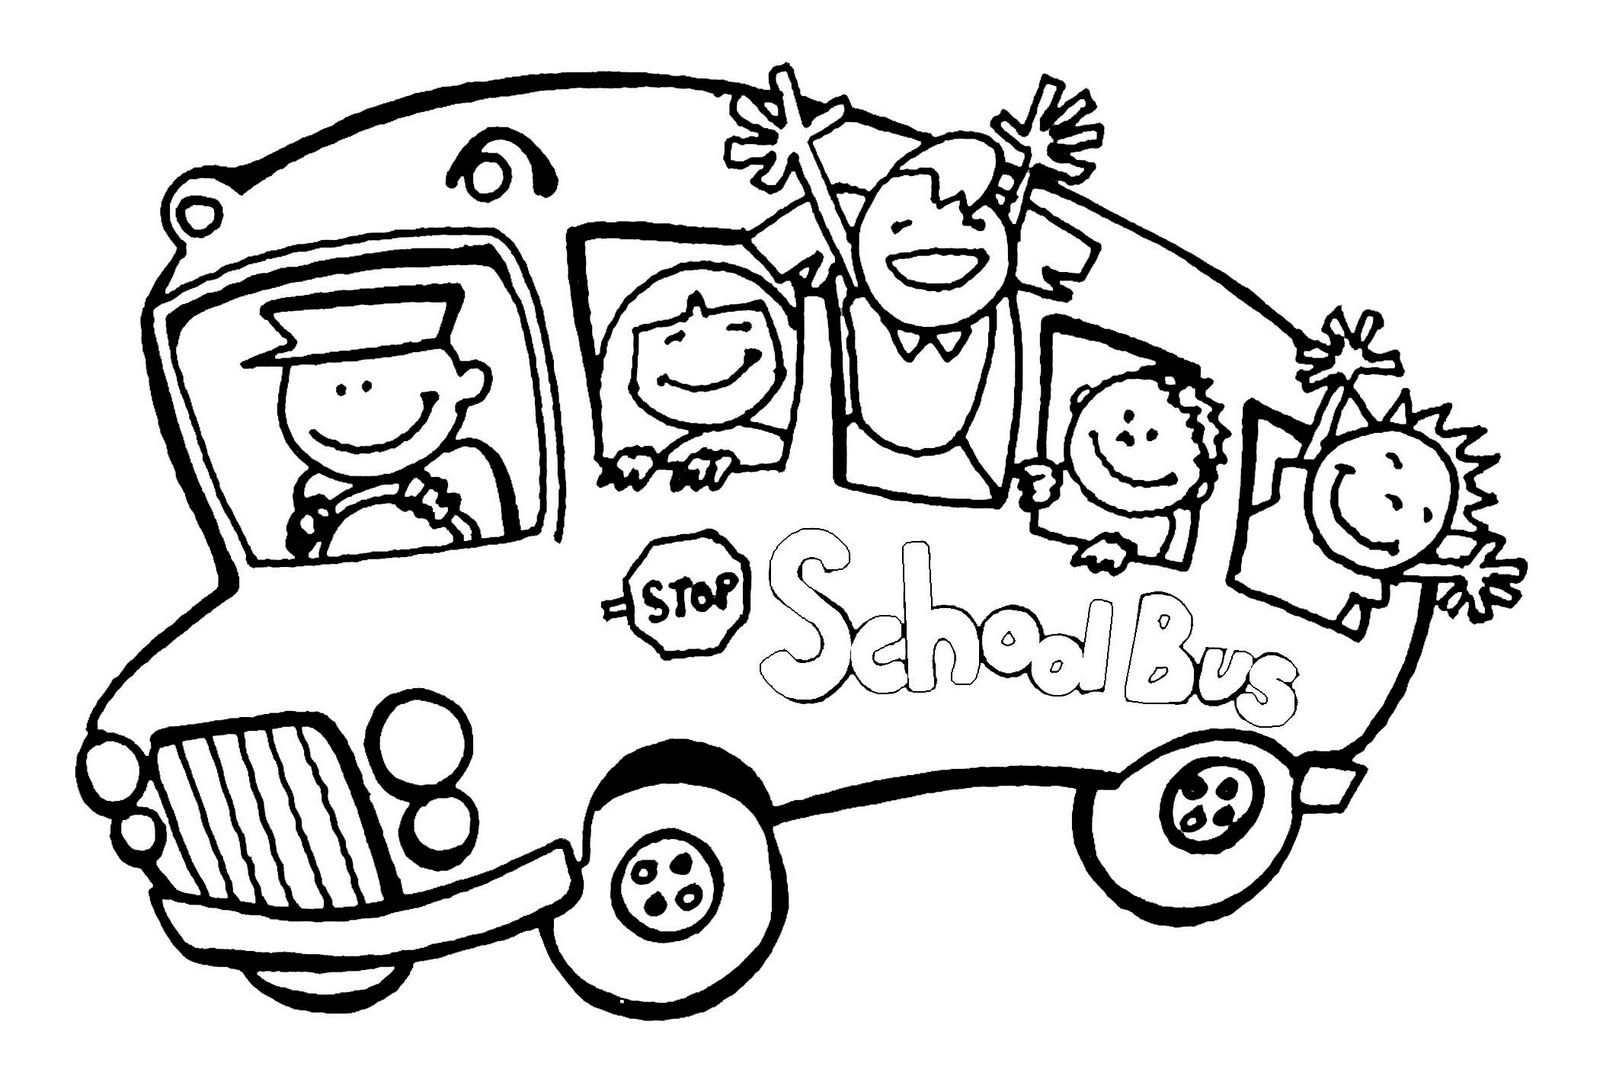 Printable Coloring Pages School Bus Imbullyfree Org With Images